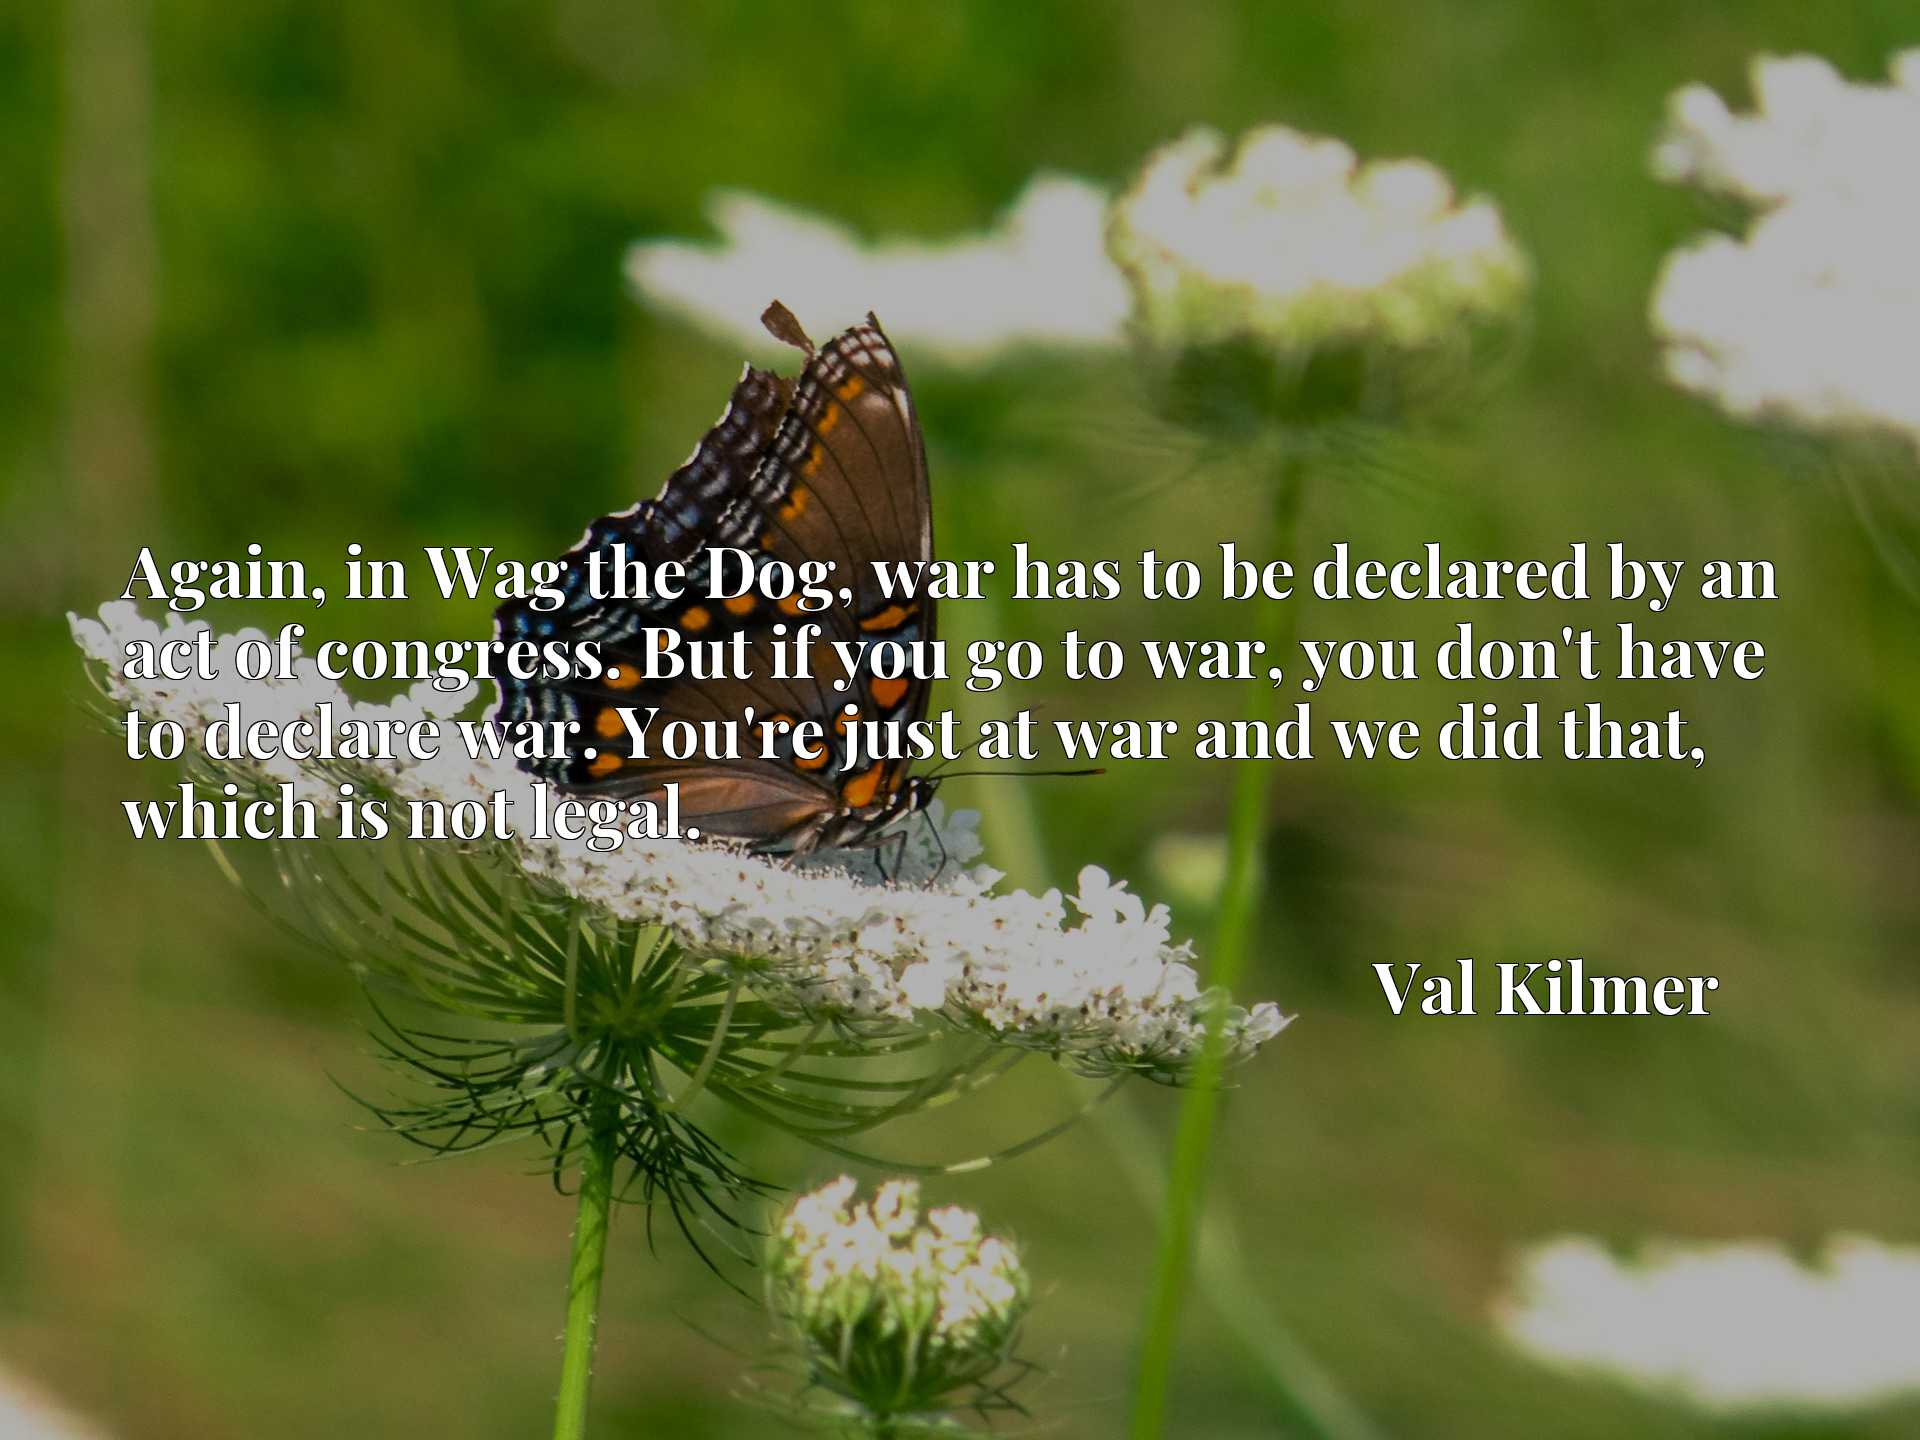 Quote Picture :Again, in Wag the Dog, war has to be declared by an act of congress. But if you go to war, you don't have to declare war. You're just at war and we did that, which is not legal.